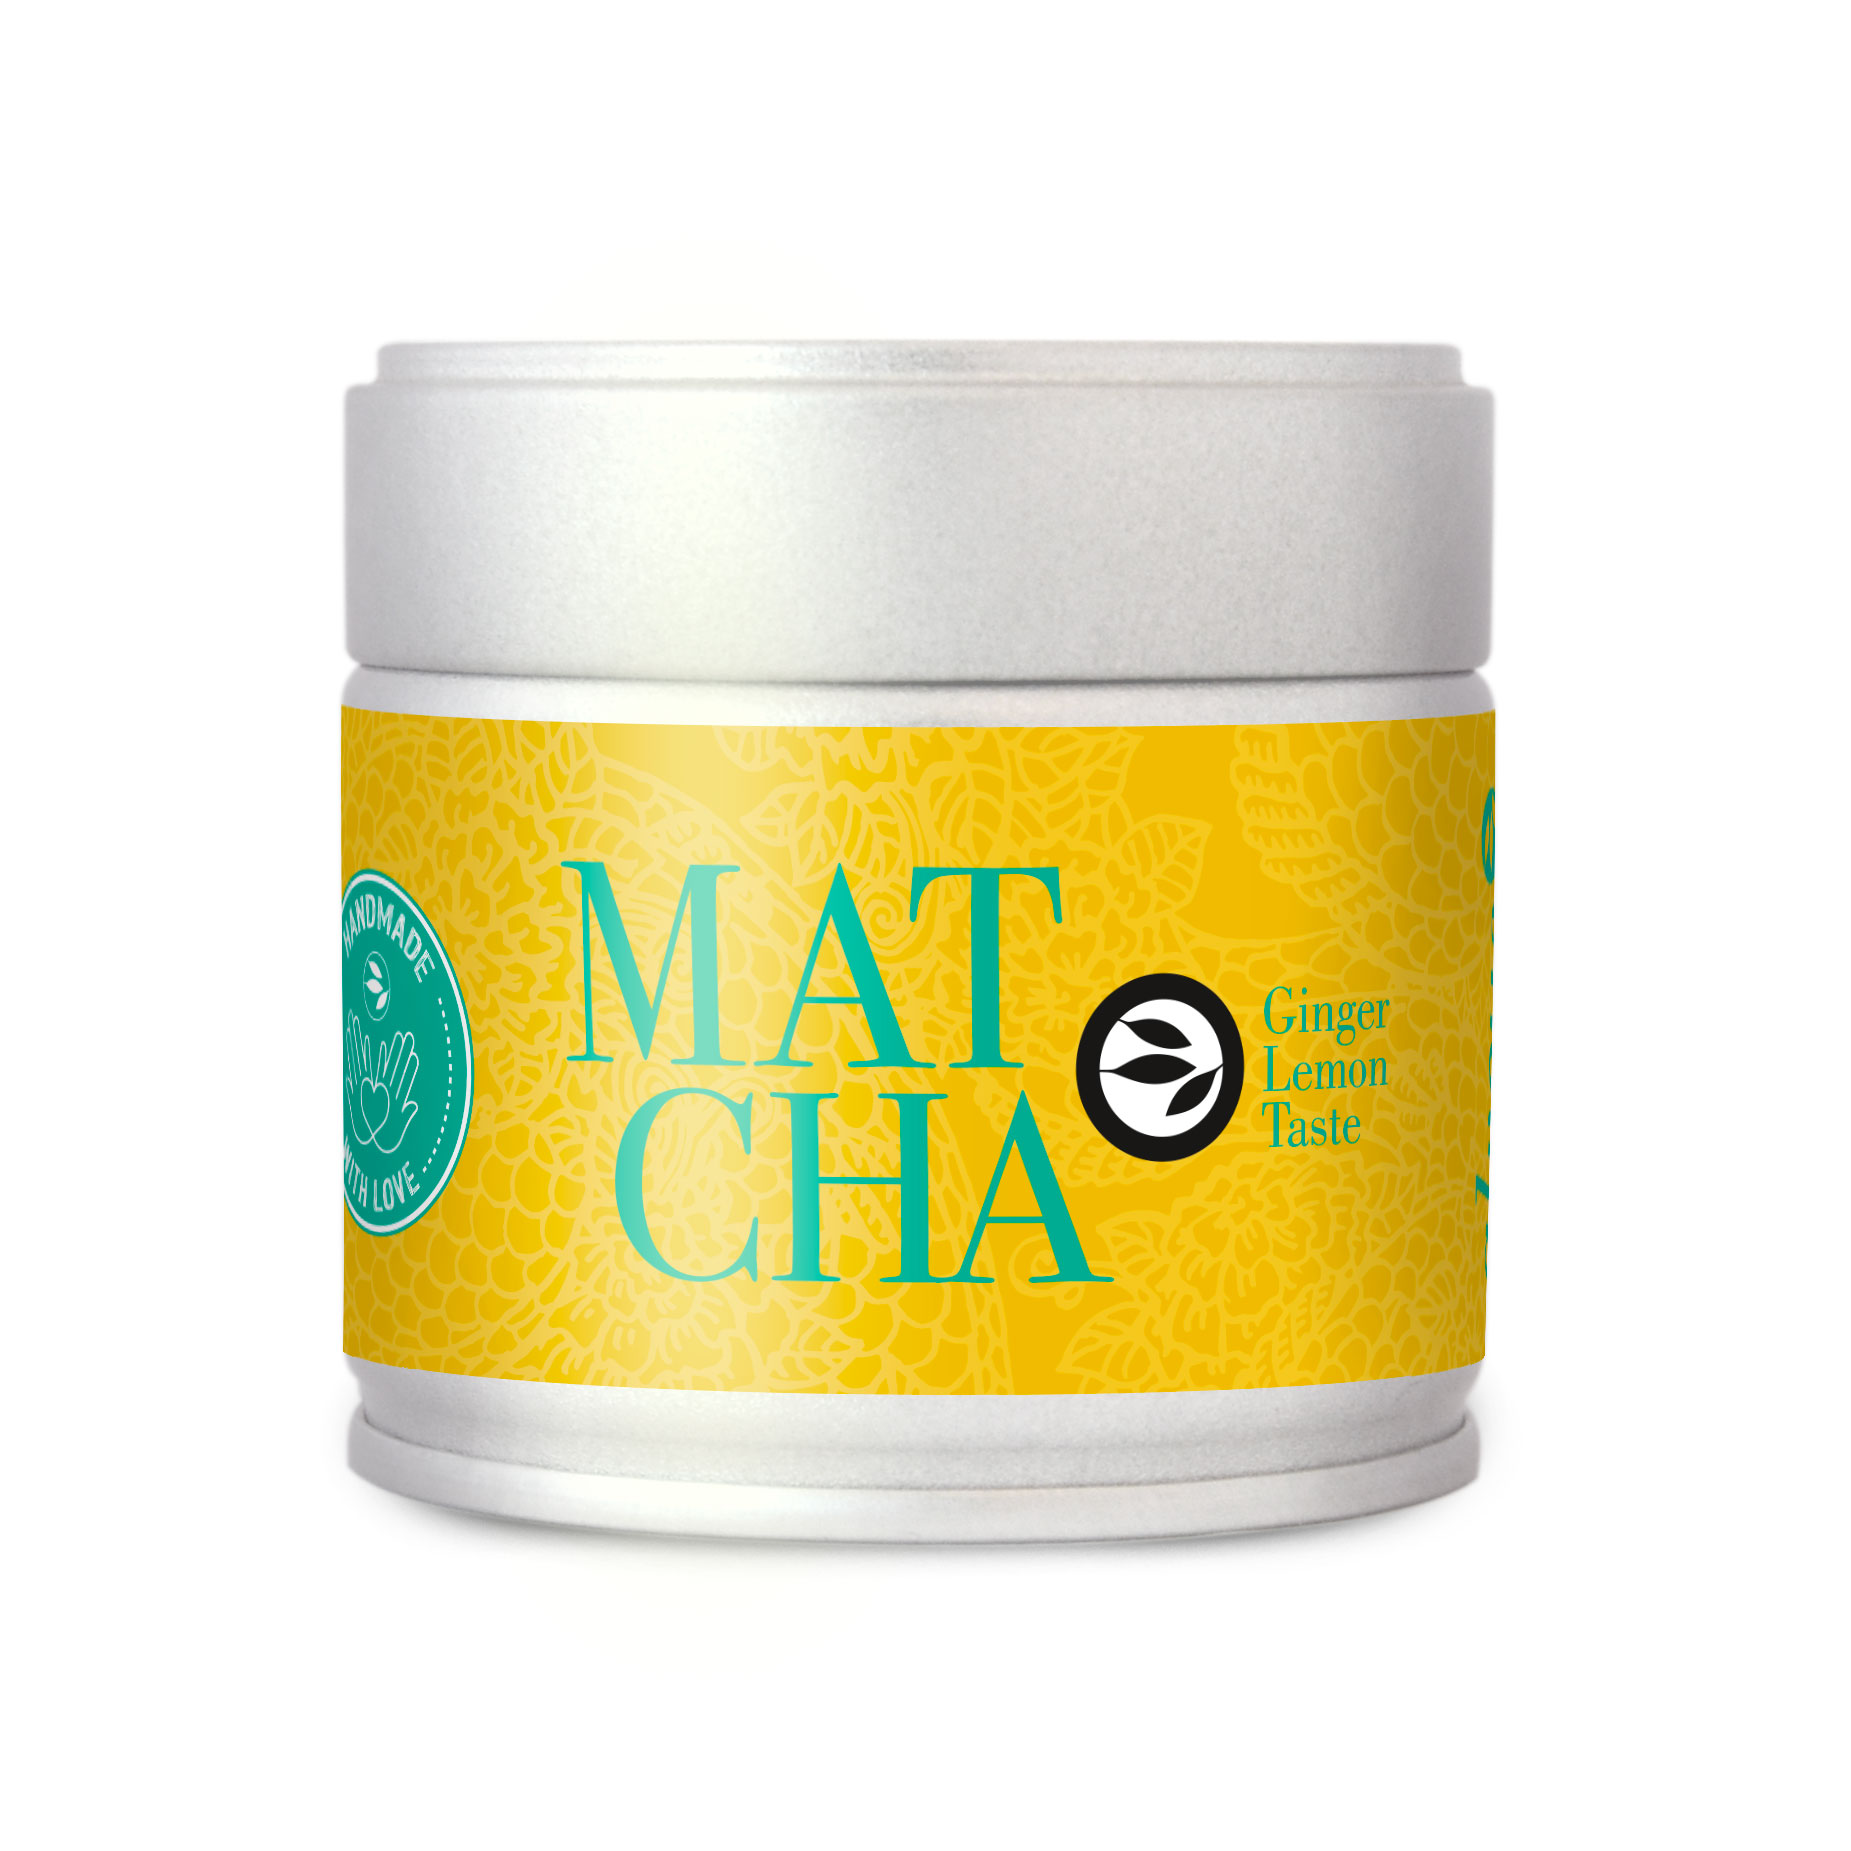 Matcha_Blends-Ginger_Lemon